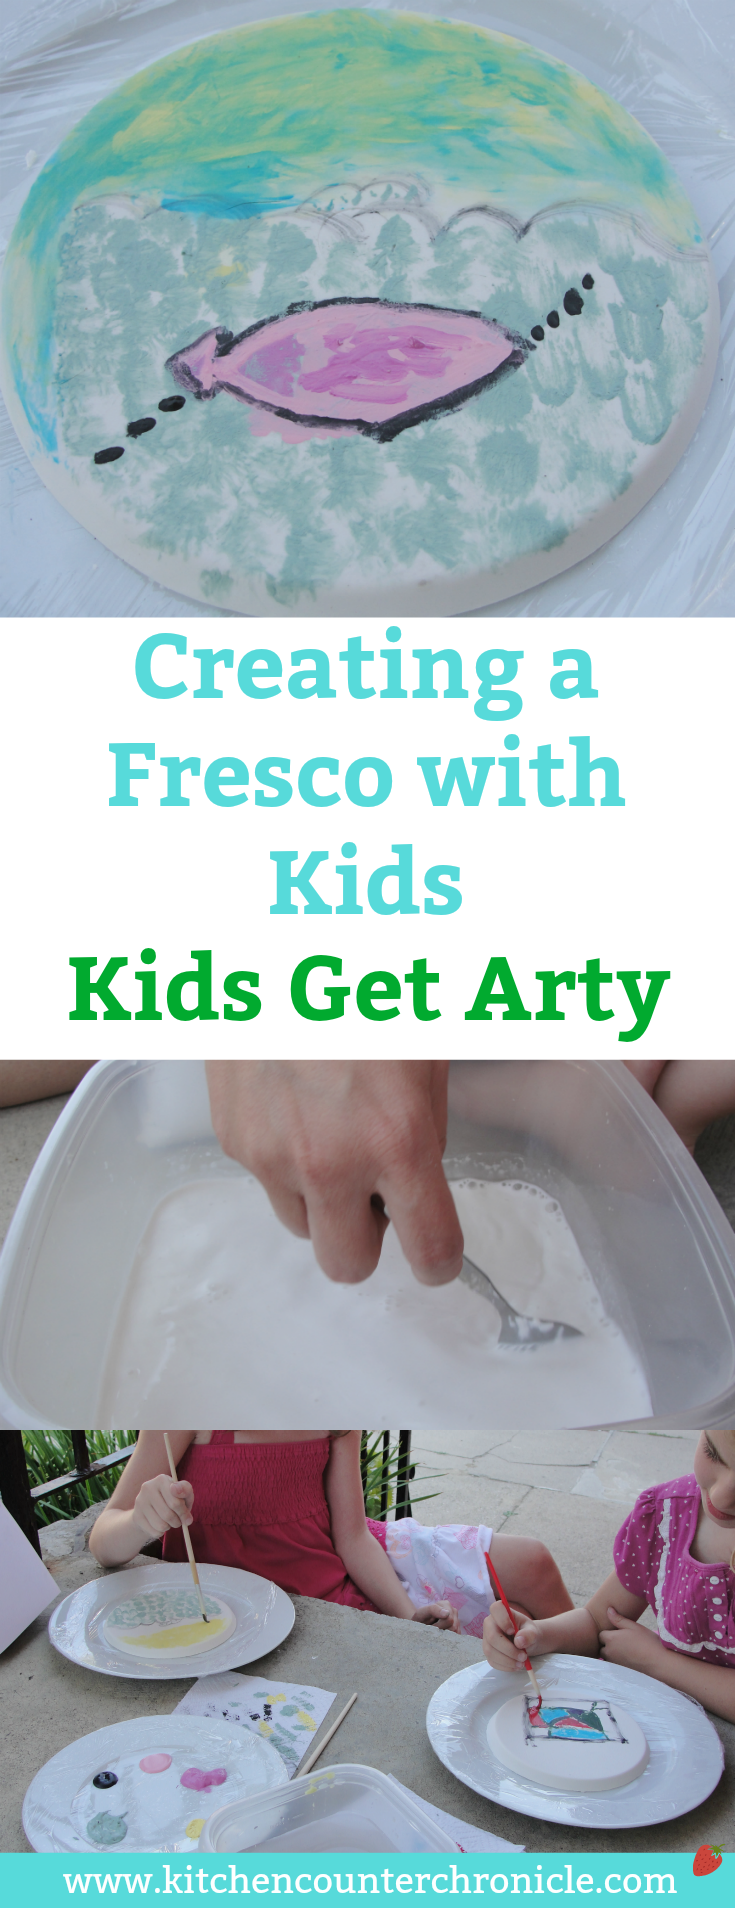 Creating a Fresco with Kids - A fun hands on art activity for kids. Painting plaster, just like DaVinci did. Step by Step instructions. | Art Project for Kids | Davinci for Kids | Painting Activity for Kids | Creative Arts for Kids | STEAM for Kids |